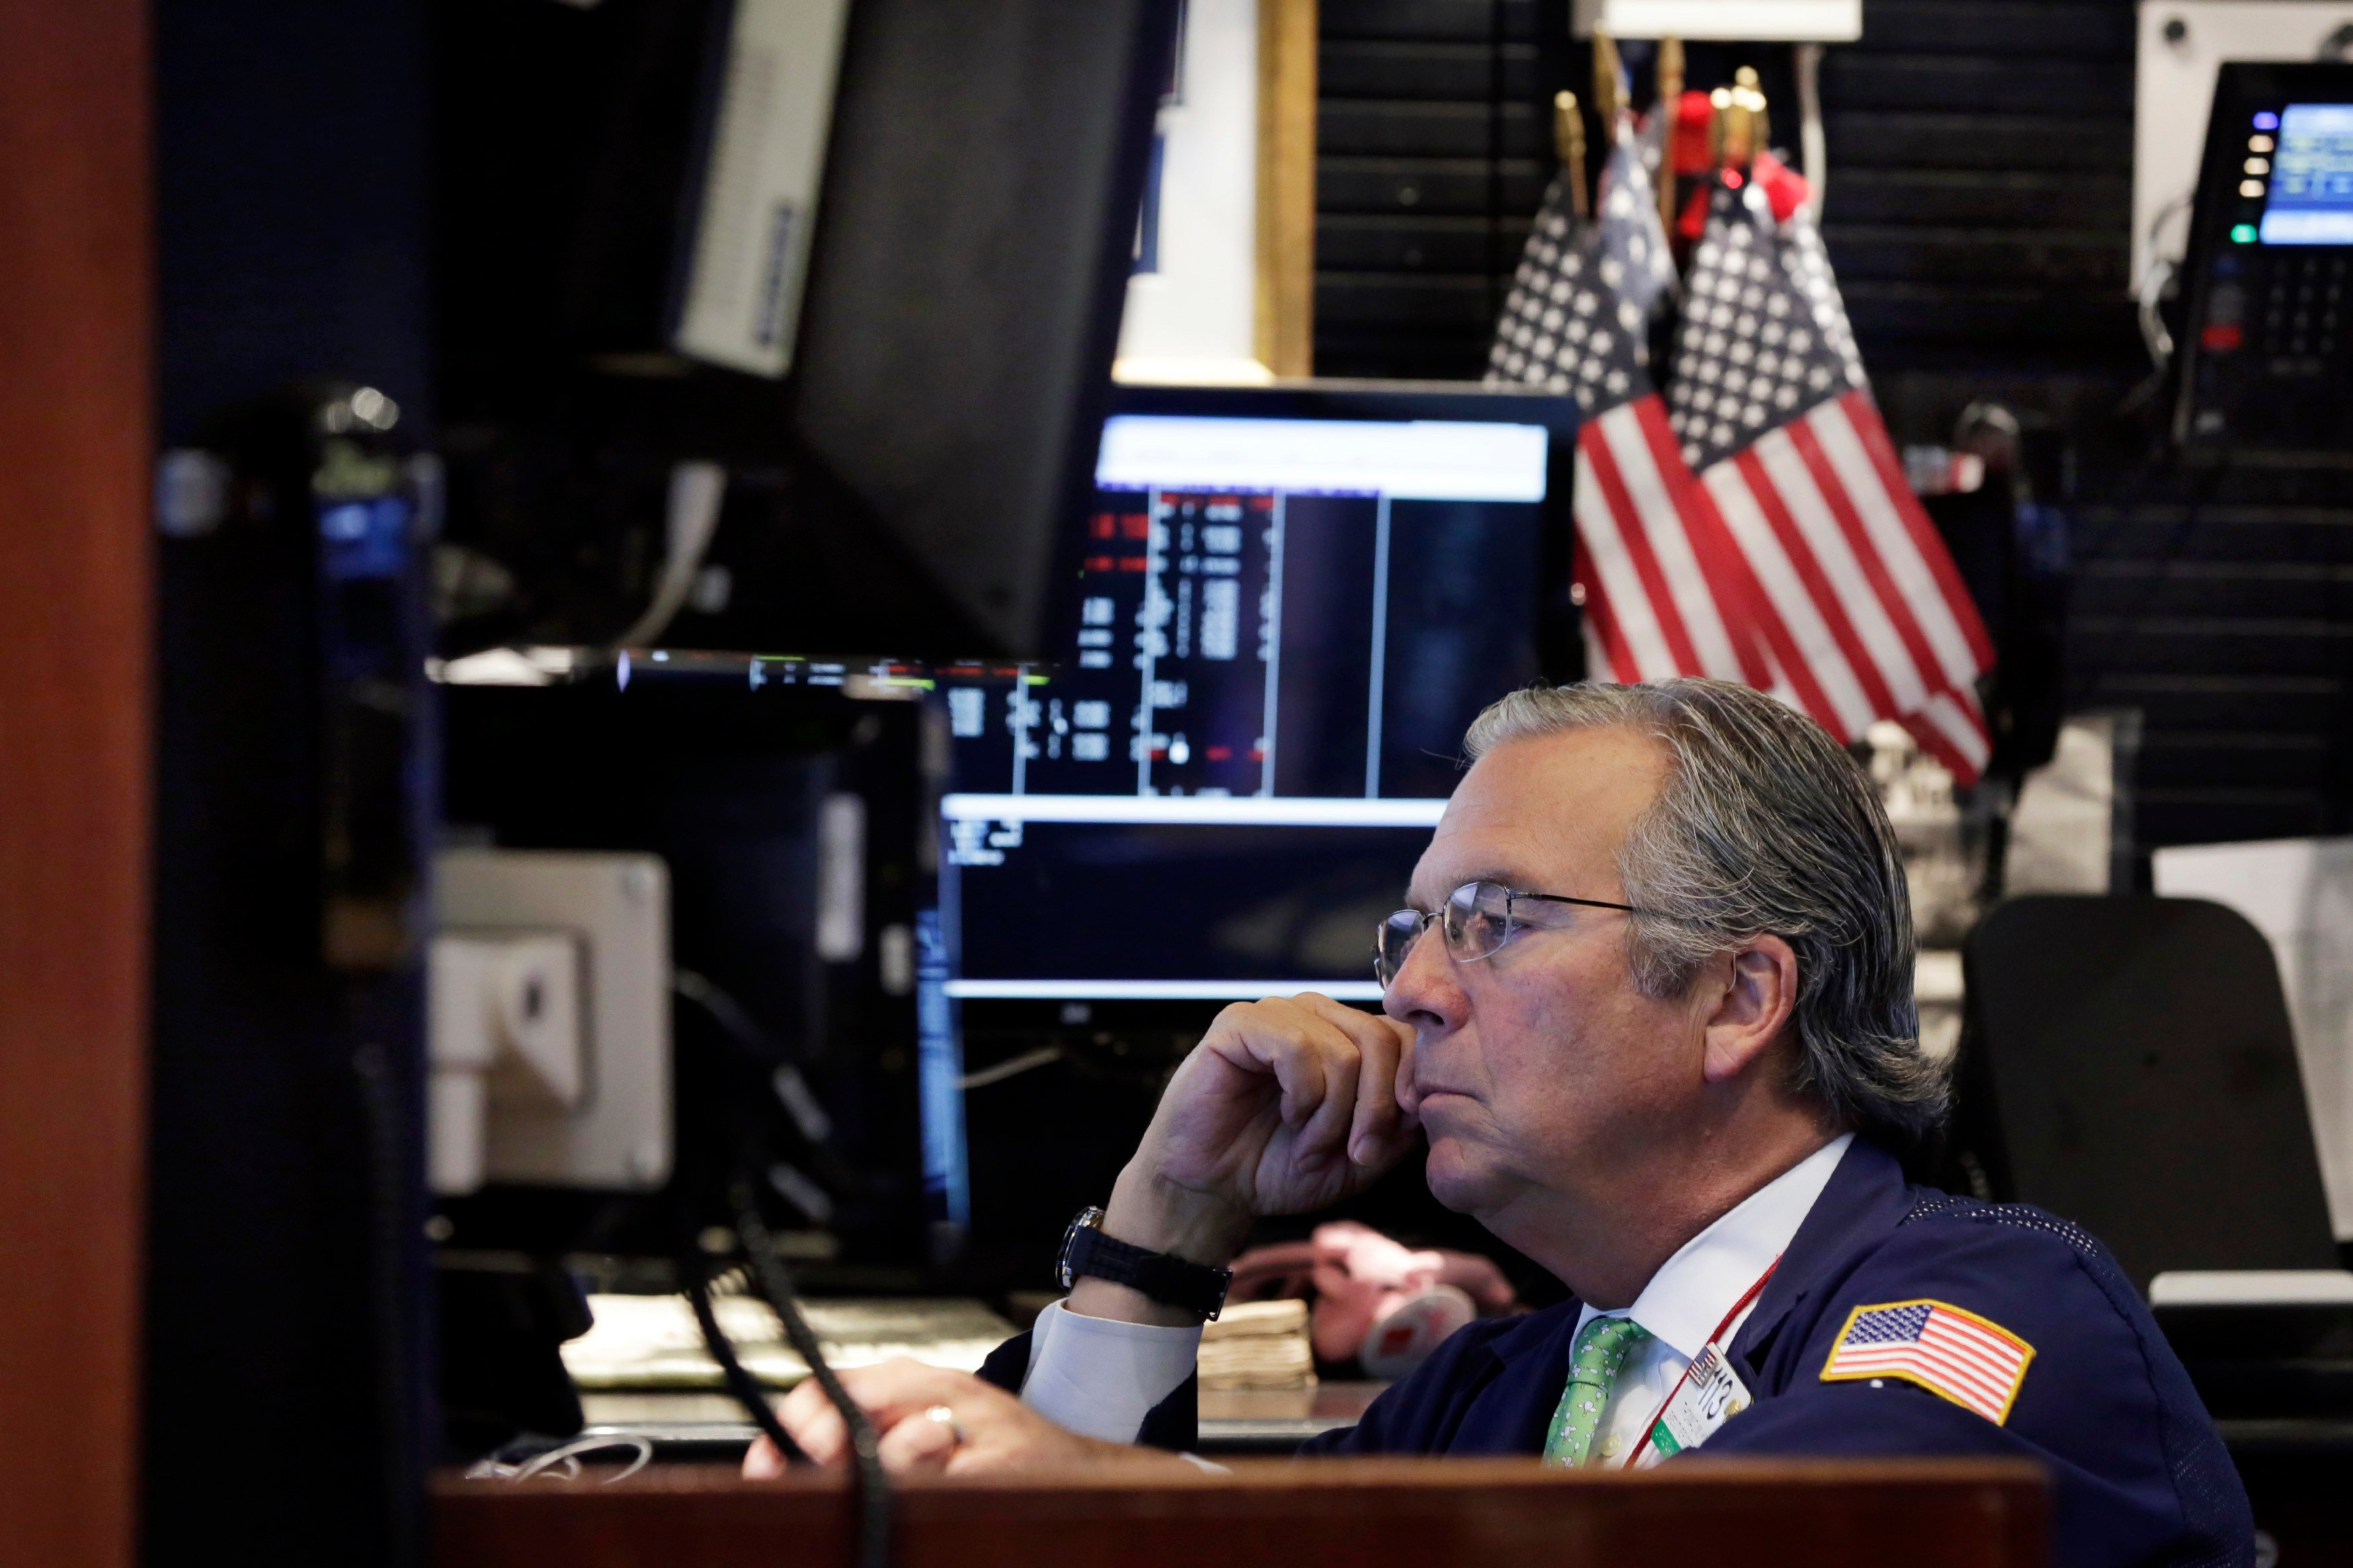 Trader Thomas Kay looks at screens in his booth before the opening bell of the NYSE, Mon, Aug. 24, 2015. World stock markets plunged on Monday after China's main index sank 8.5 percent, its biggest drop since the early days of the global financial crisis.